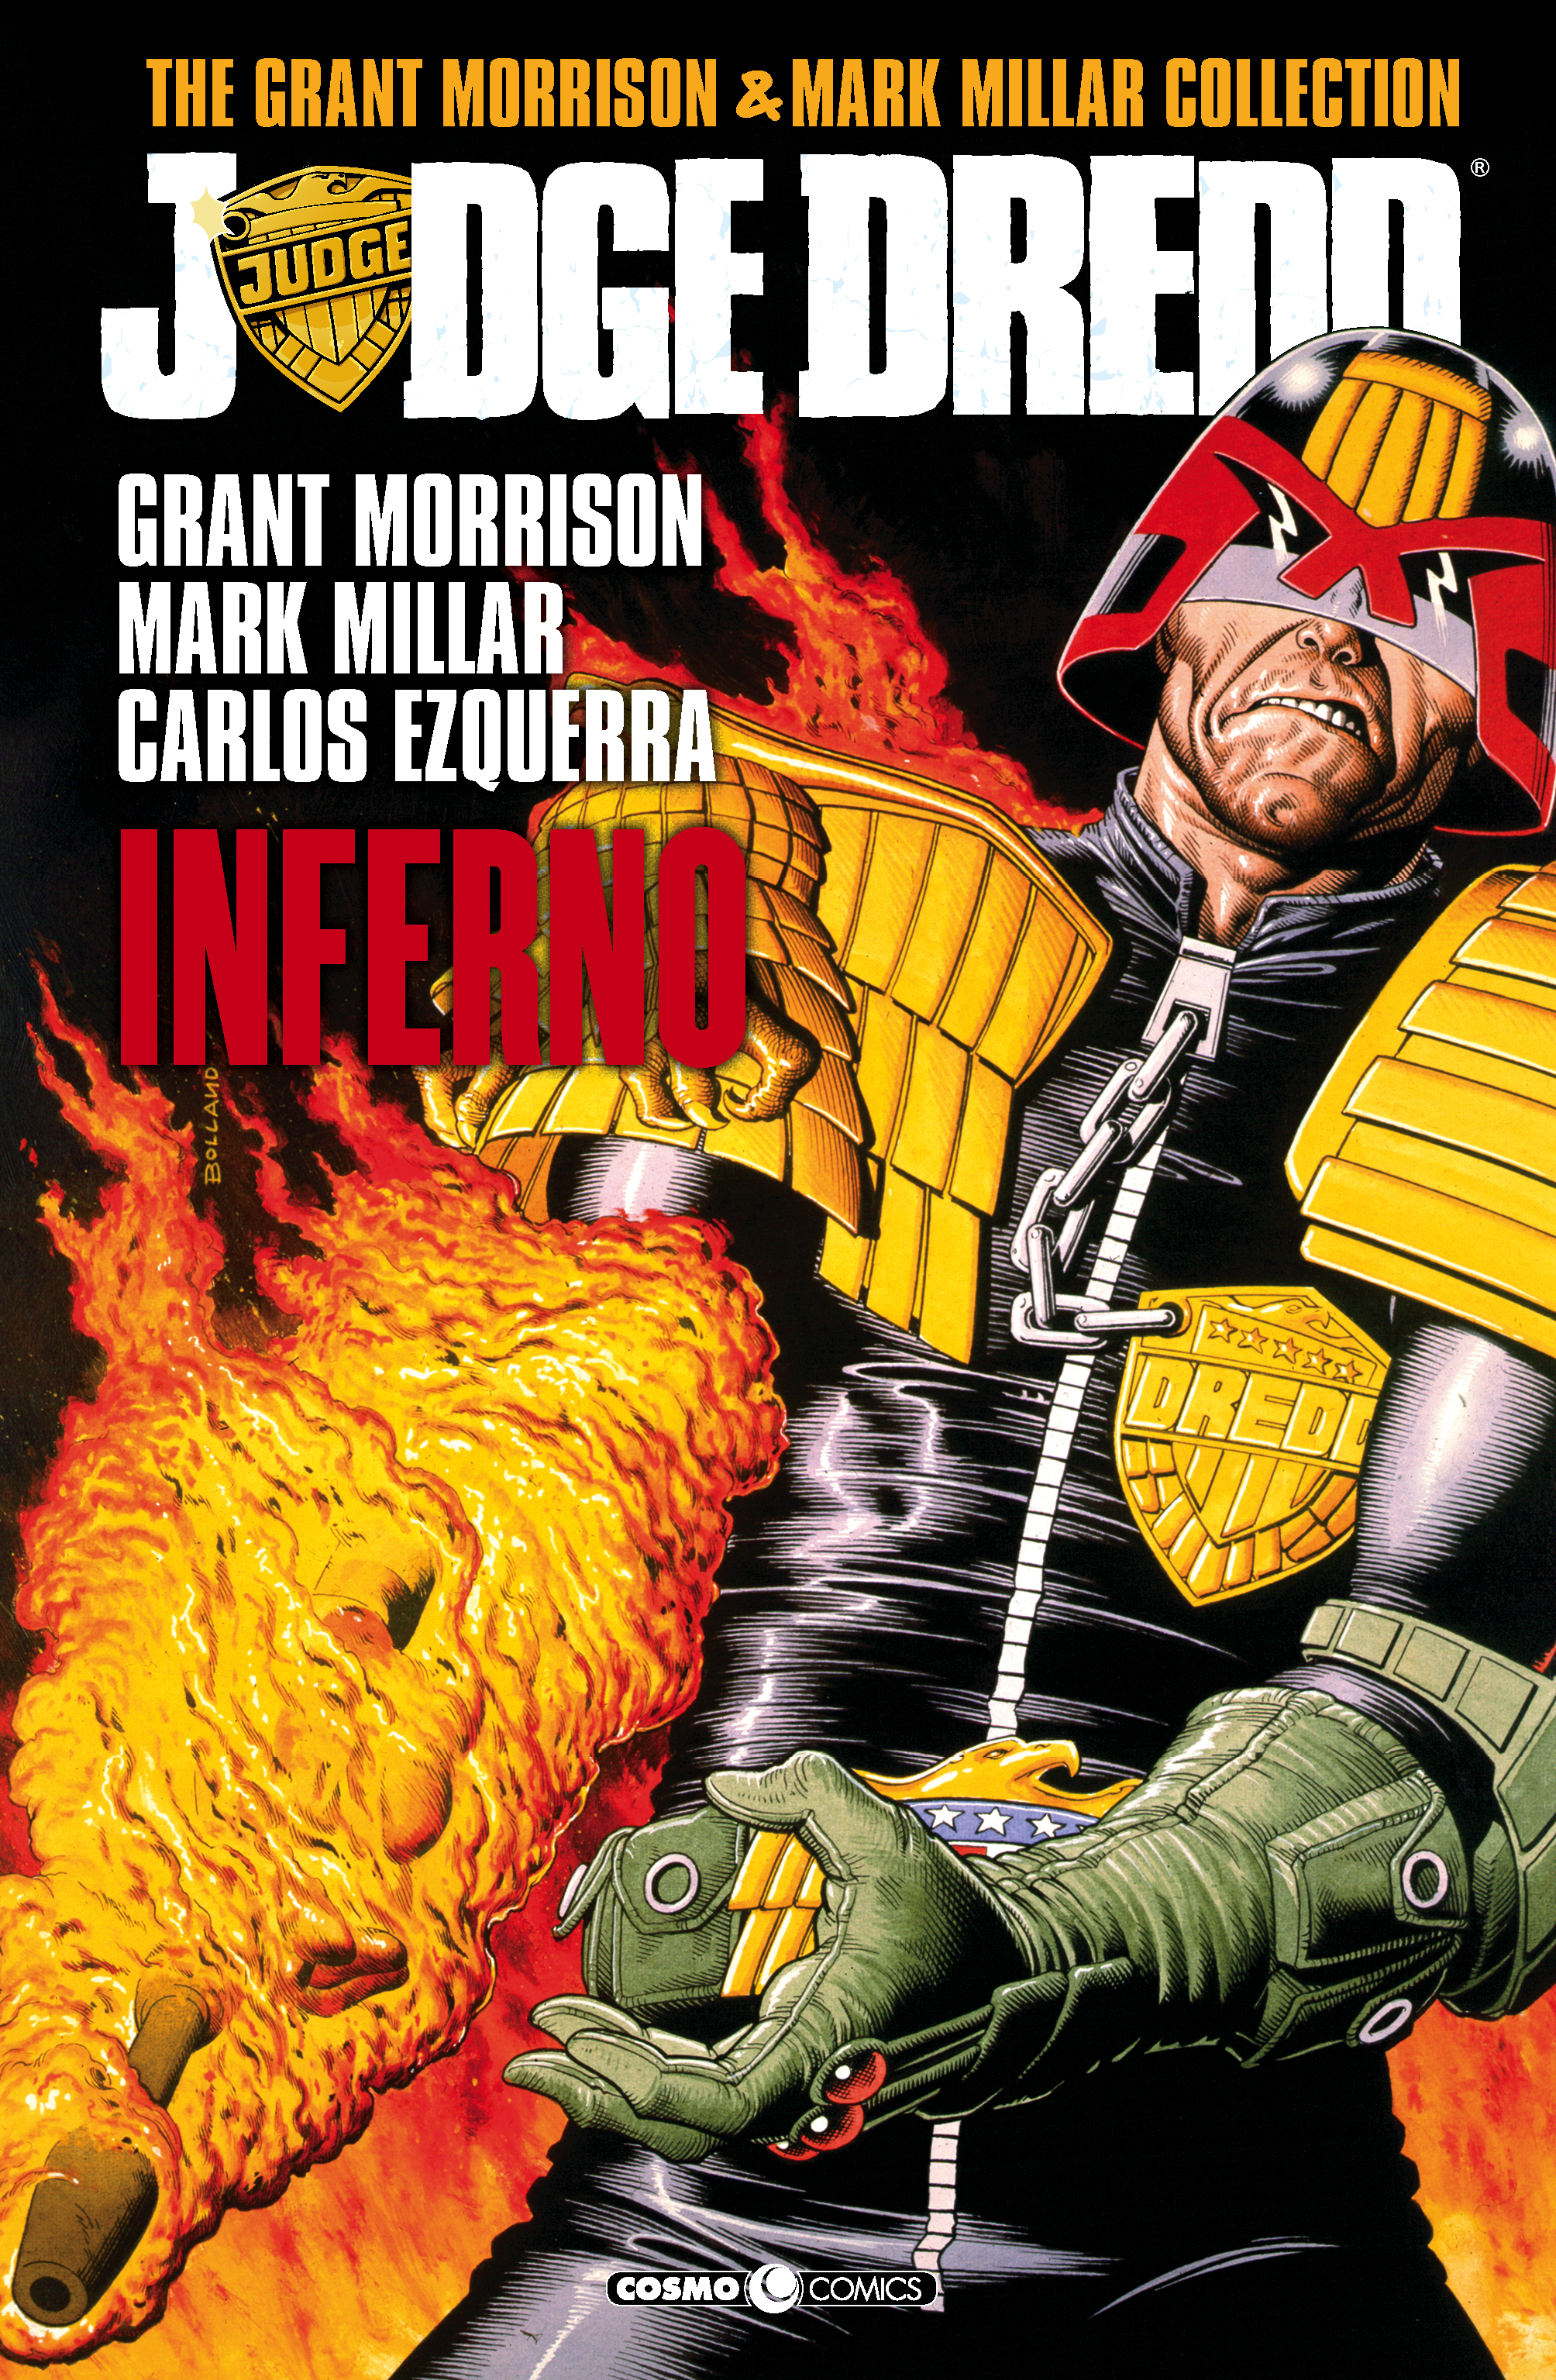 JUDGE DREDD: THE GRANT MORRISON & MARK MILLAR COLLECTION 1 INFERNO